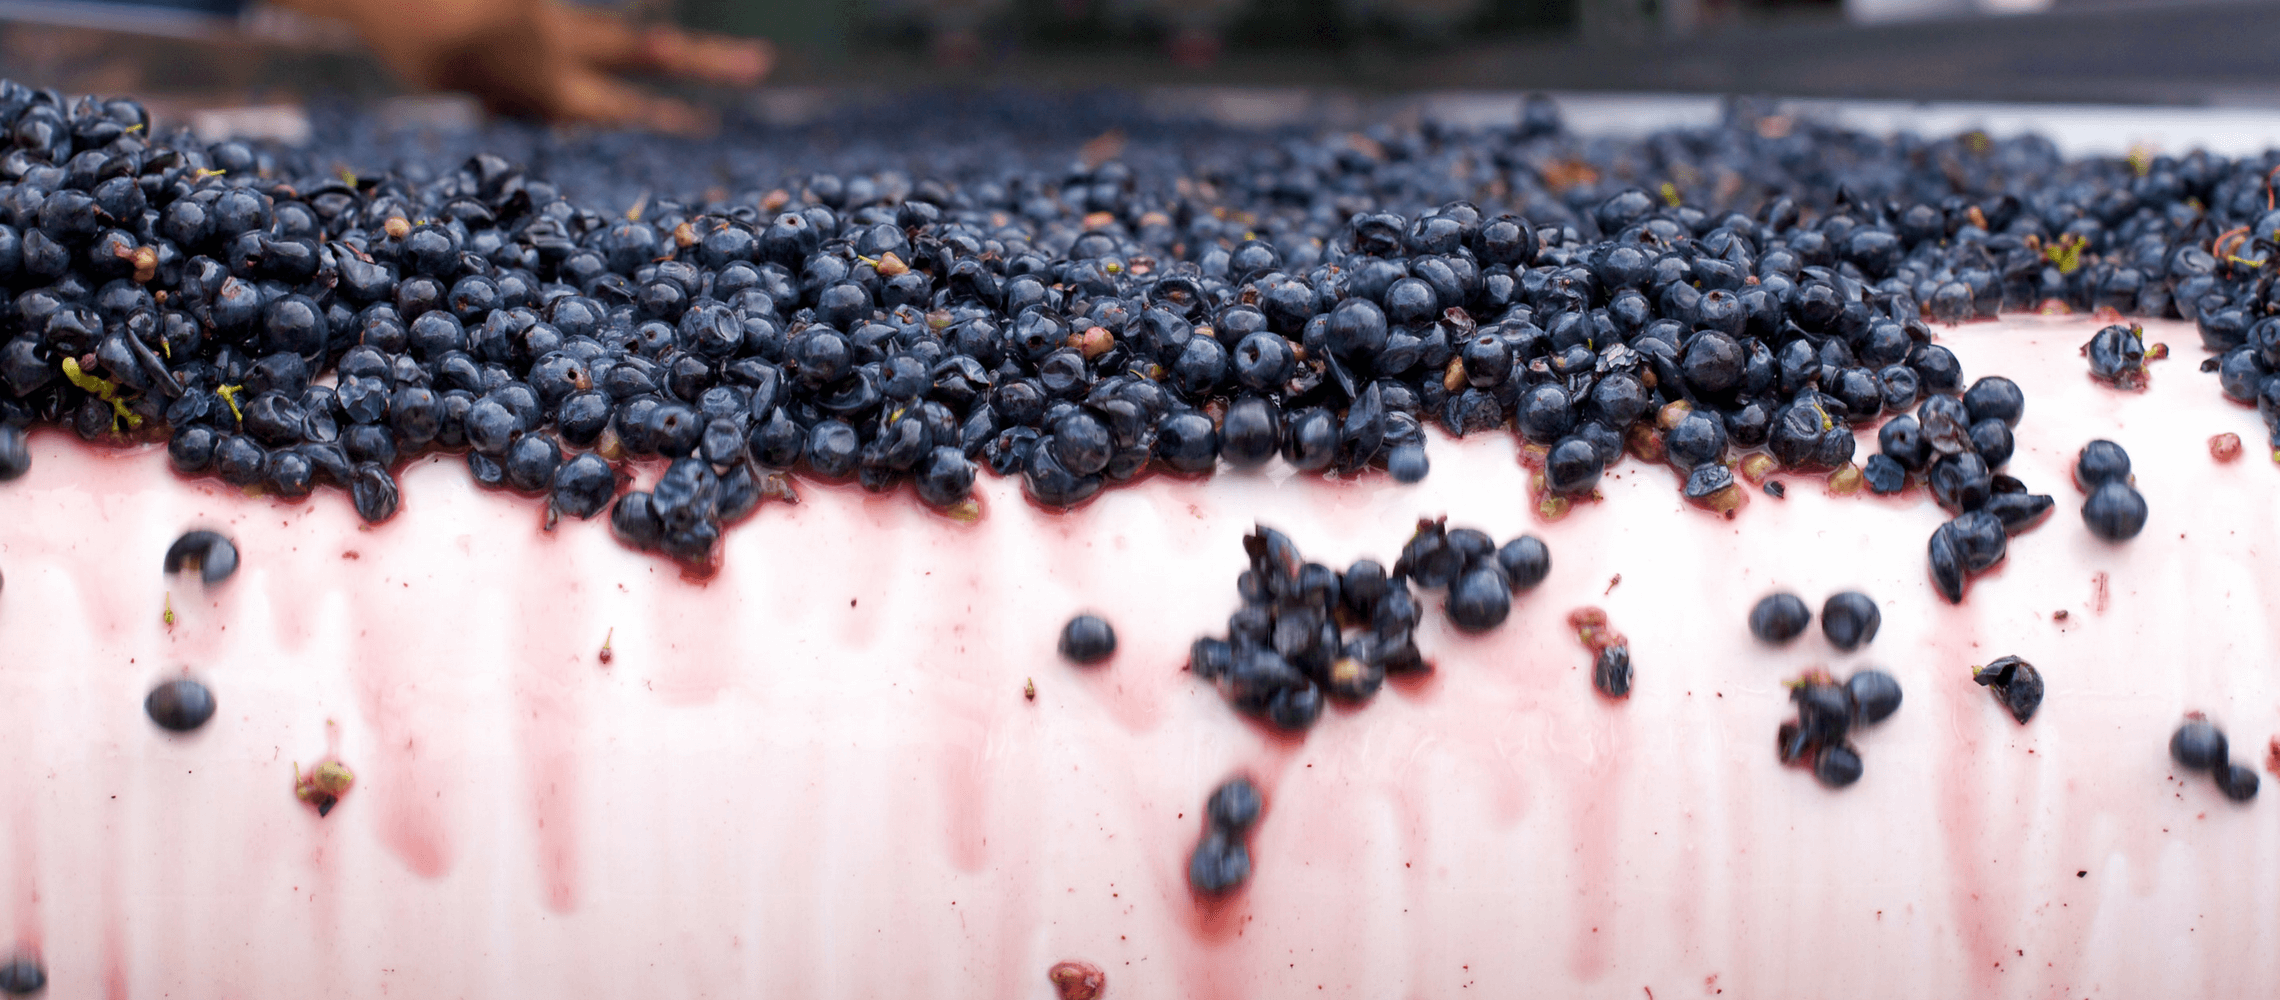 Photo for: Affecting Innovation in Winemaking